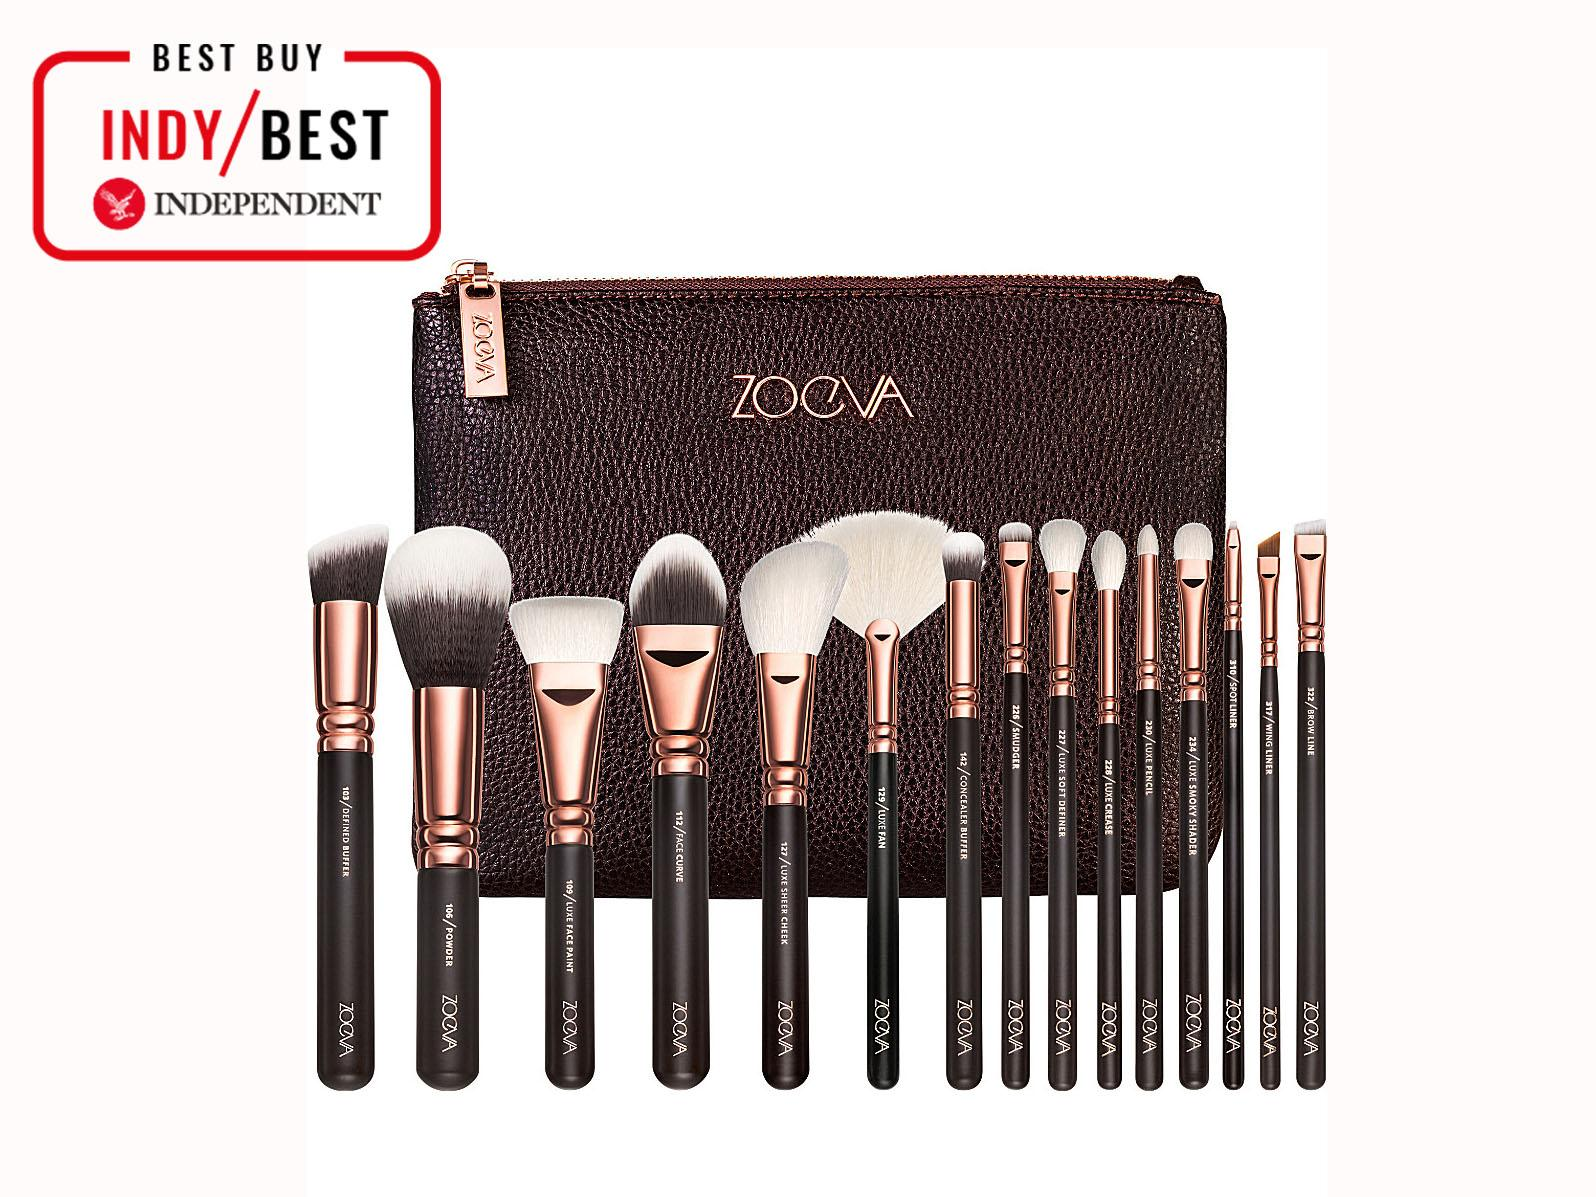 If you are a makeup obsessive, this set was made for you. Zoeva has created a number of brush sets, but this one is our favourite because it has everything ...